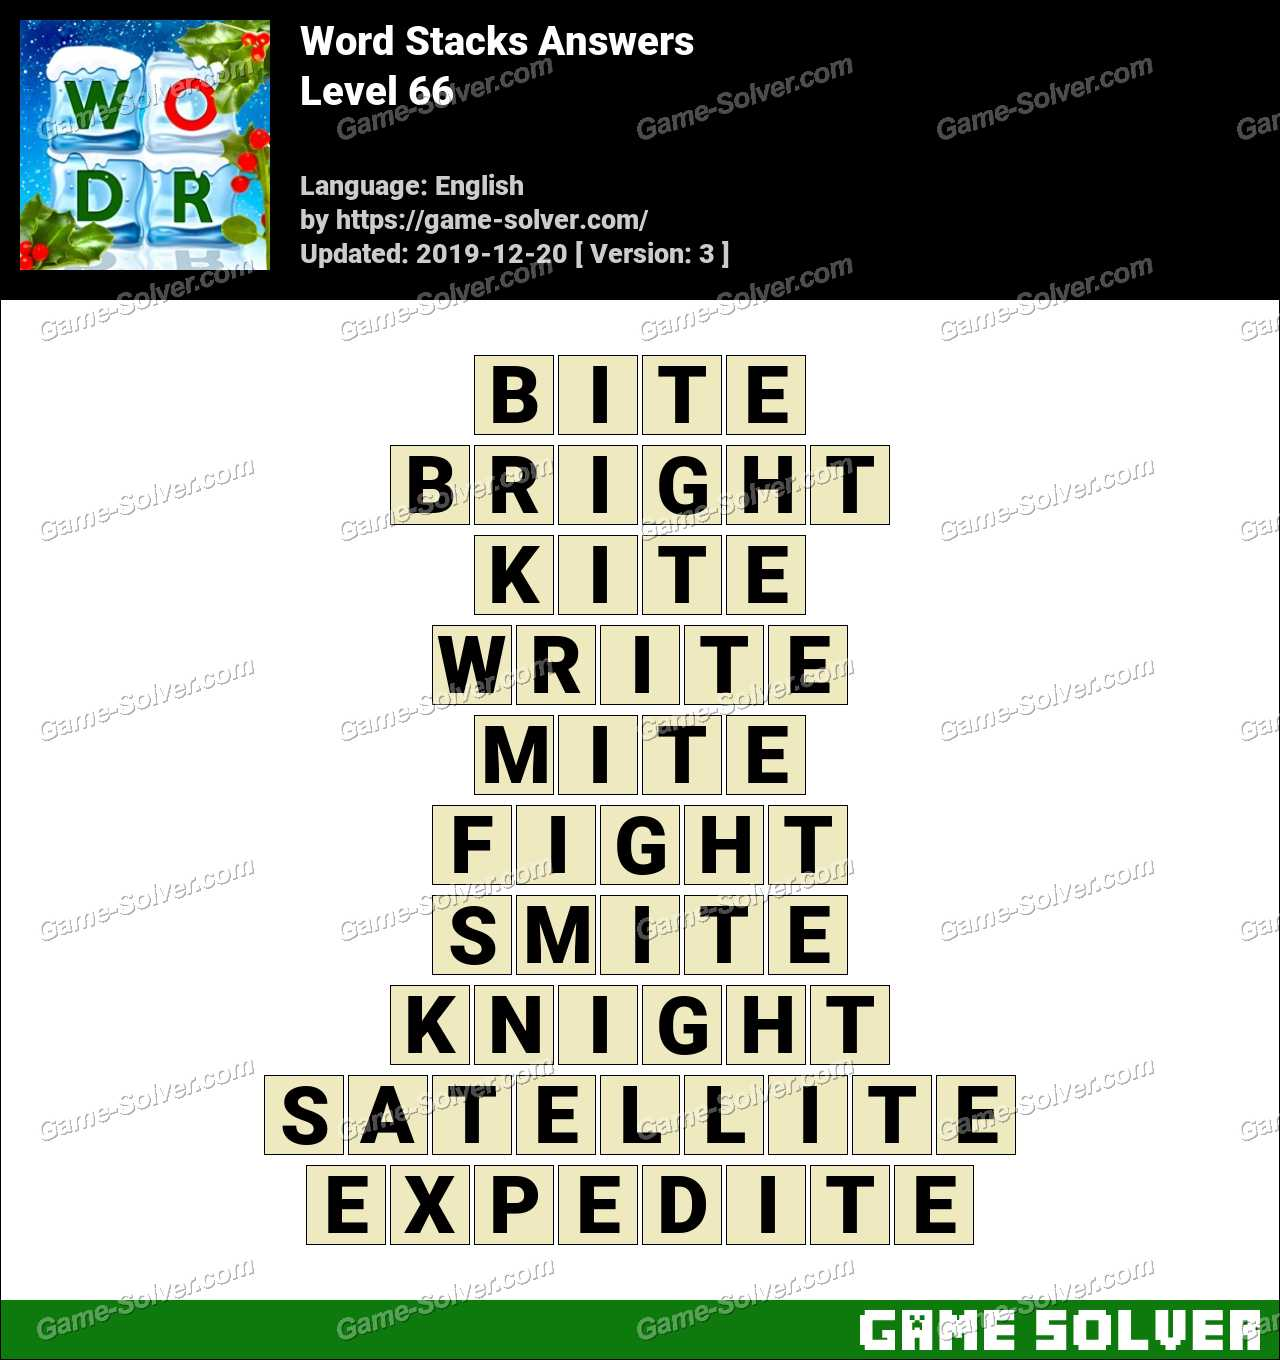 Word Stacks Level 66 Answers